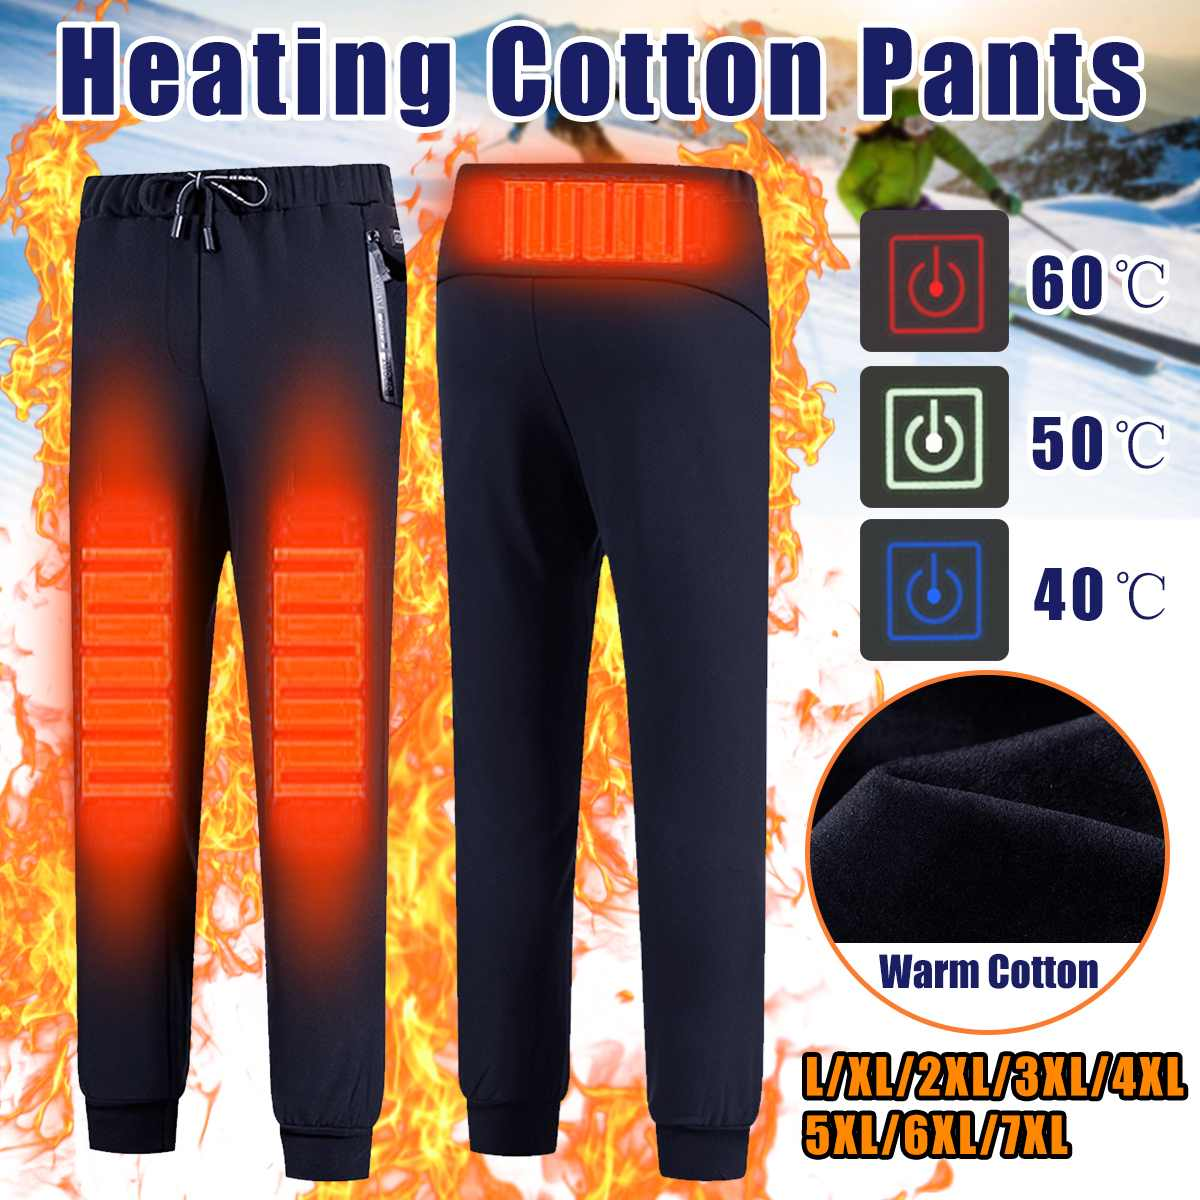 Men Women Heating Pants New Warm USB Electric Heated Sport Winter Fleece Trousers For Outdoor Trekking Camping Hiking